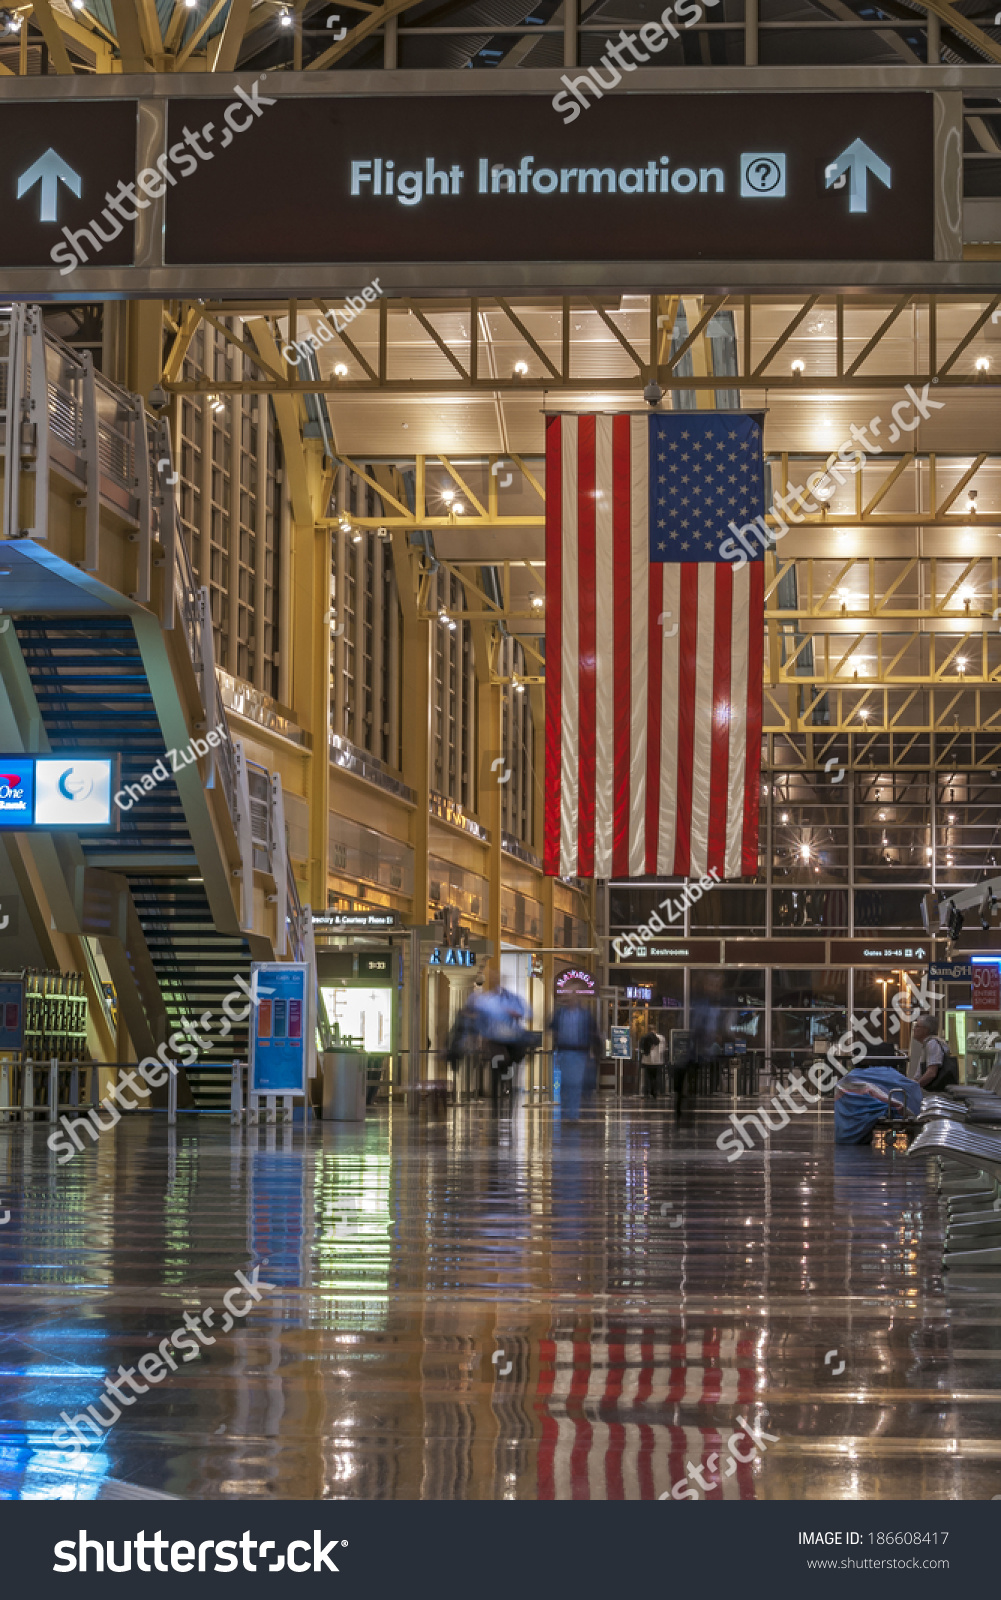 October 2, 2014: Many Major Airports In